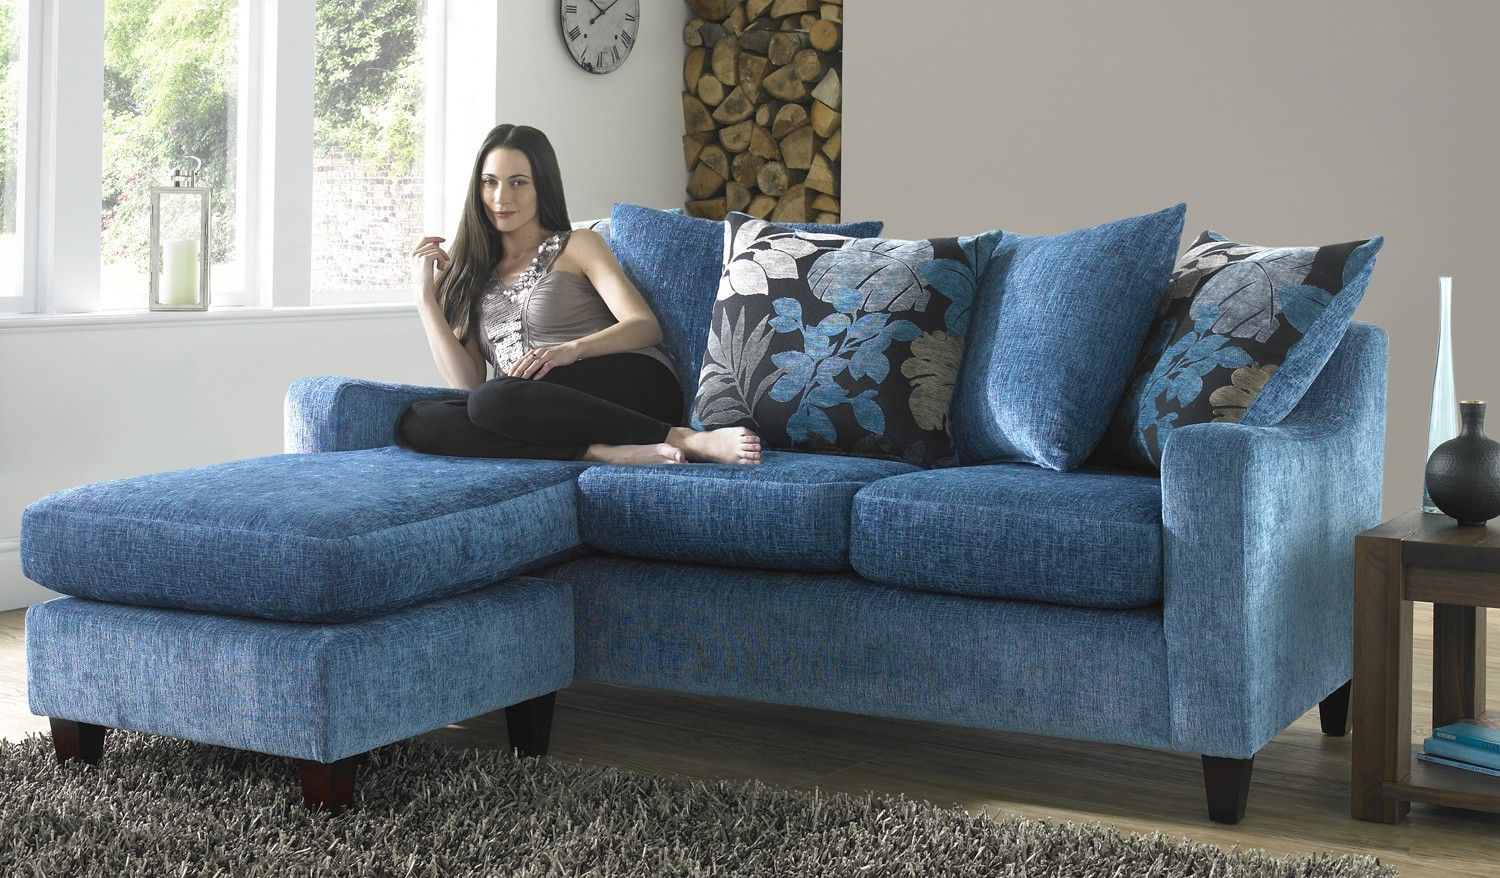 Sofaworks Reading Number Diamond Sofa Dolce Allegro Let S Do This Already It Be